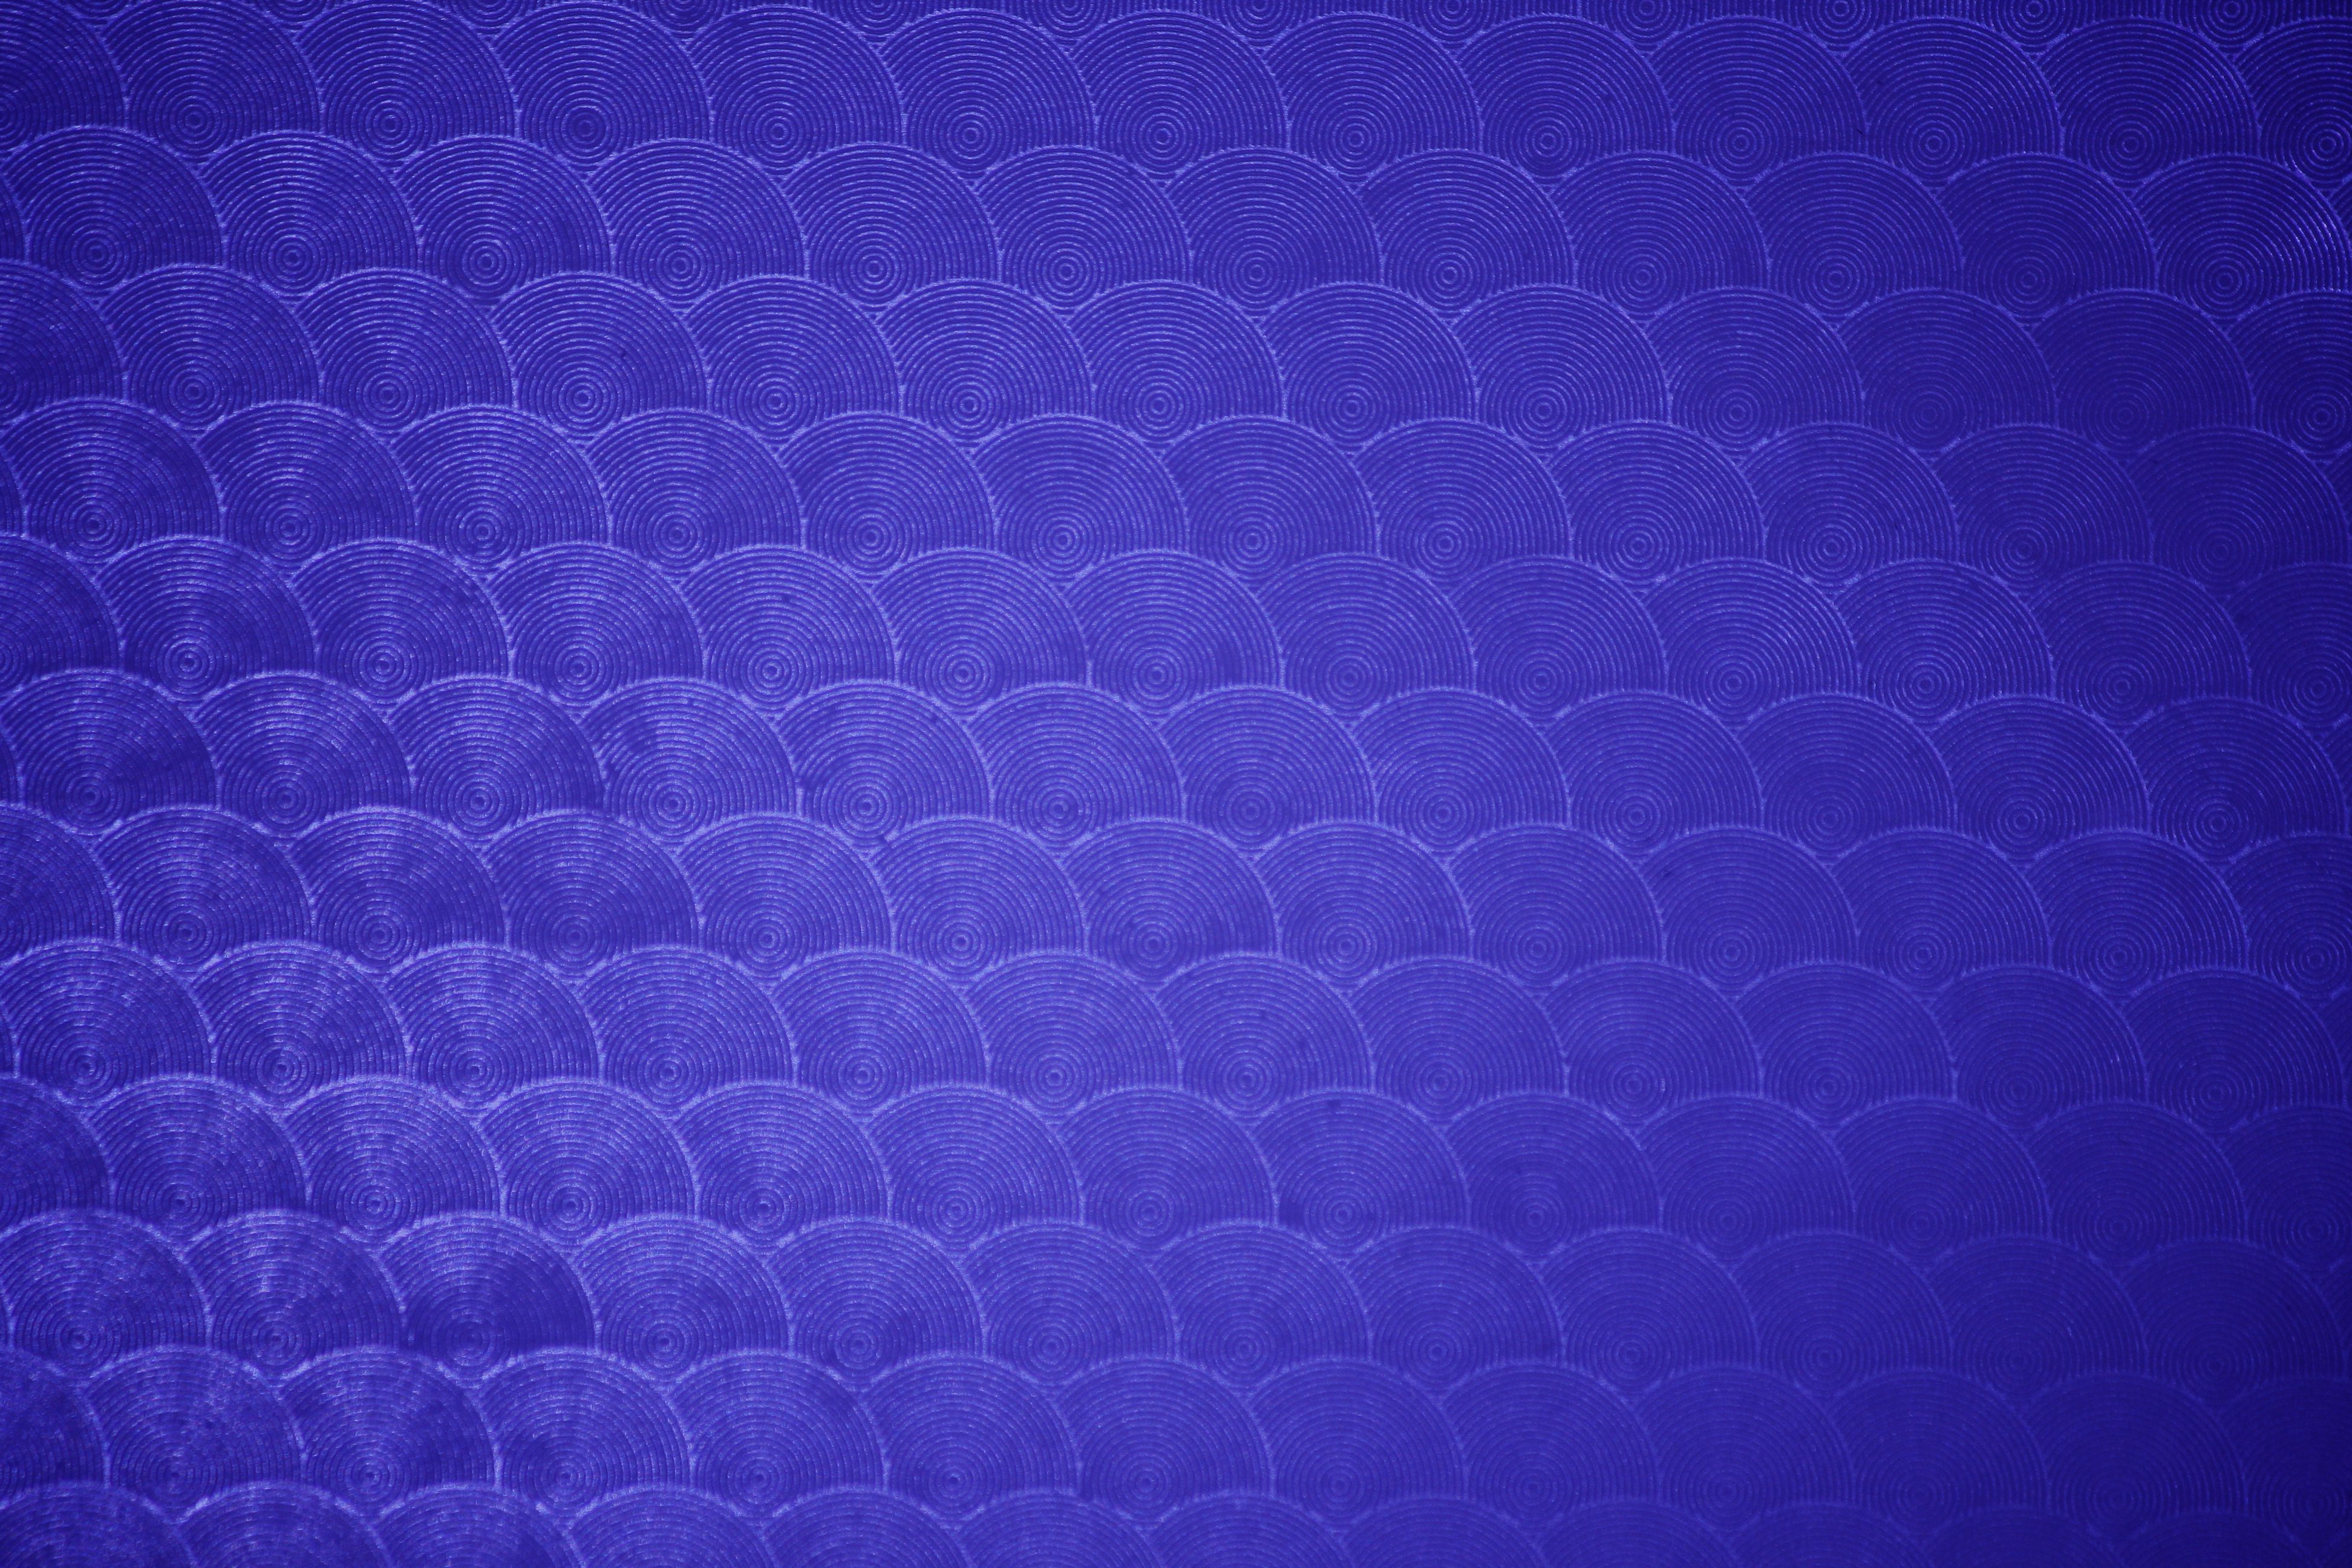 Royal Blue Circle Patterned Plastic Texture Picture